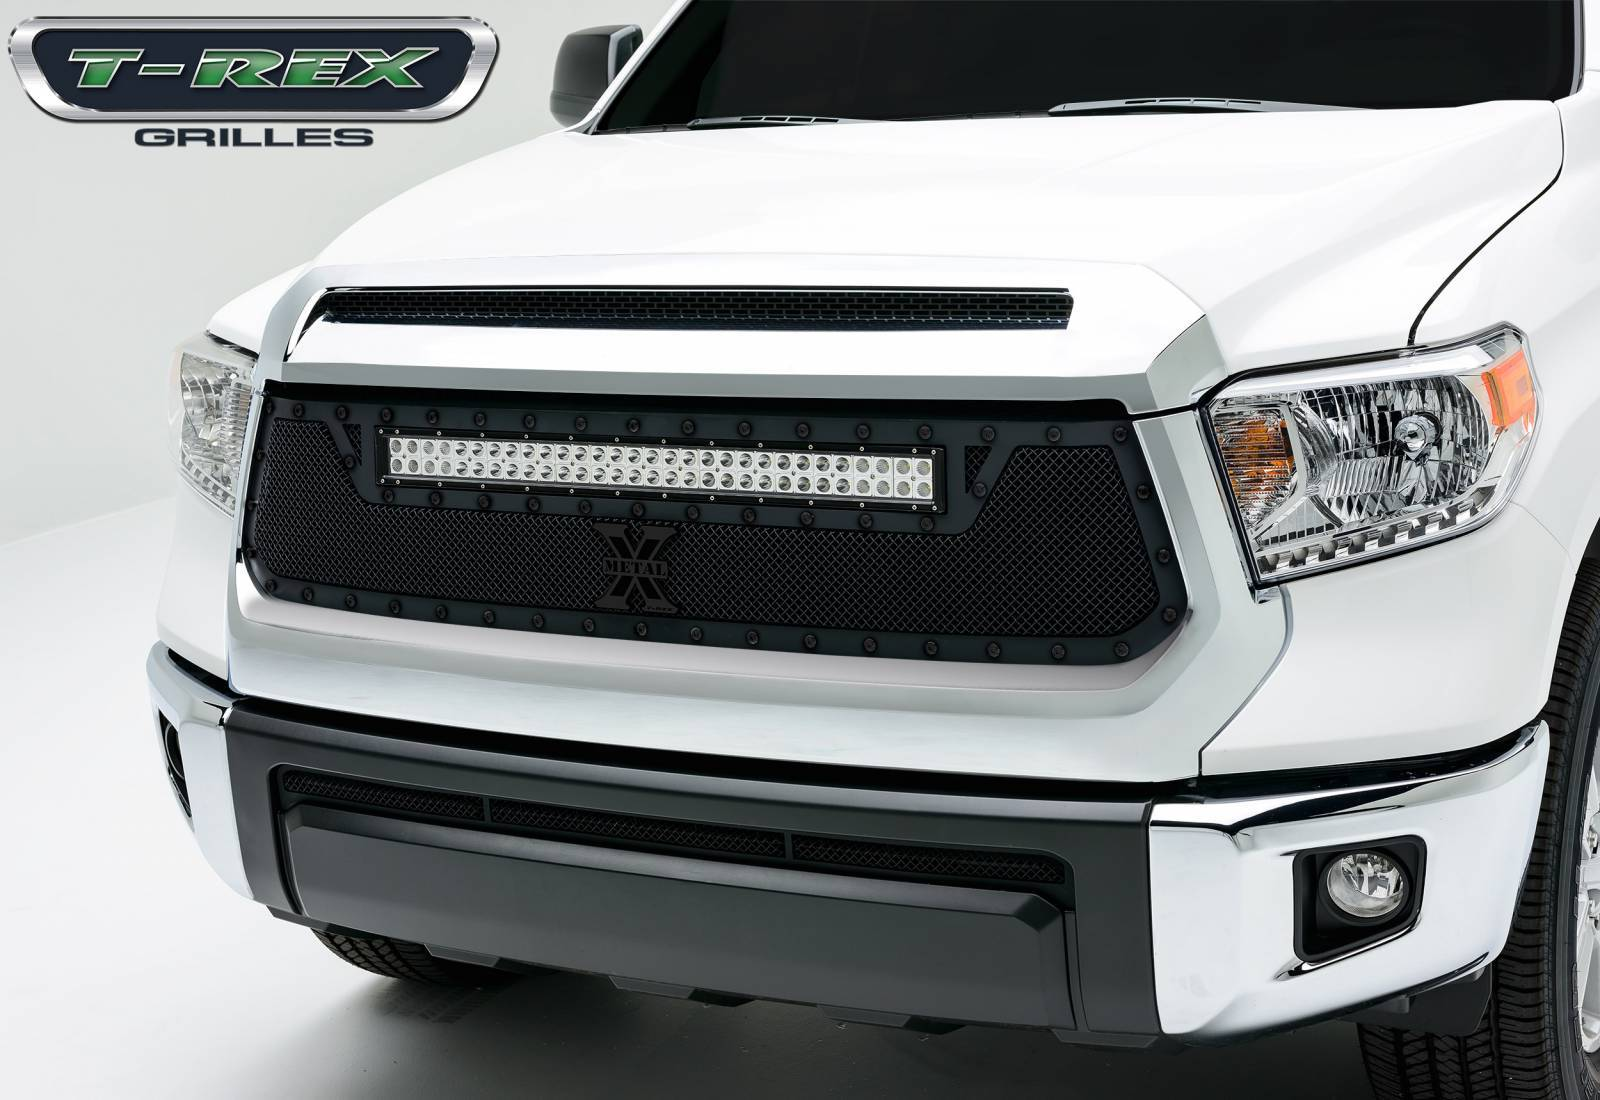 """T-REX Grilles - Toyota Tundra TORCH Series LED Light Grille,1 - 30"""" LED Bar, Formed Mesh, Main Grille, Replacement, 1 Pc - Pt # 6319641-BR"""